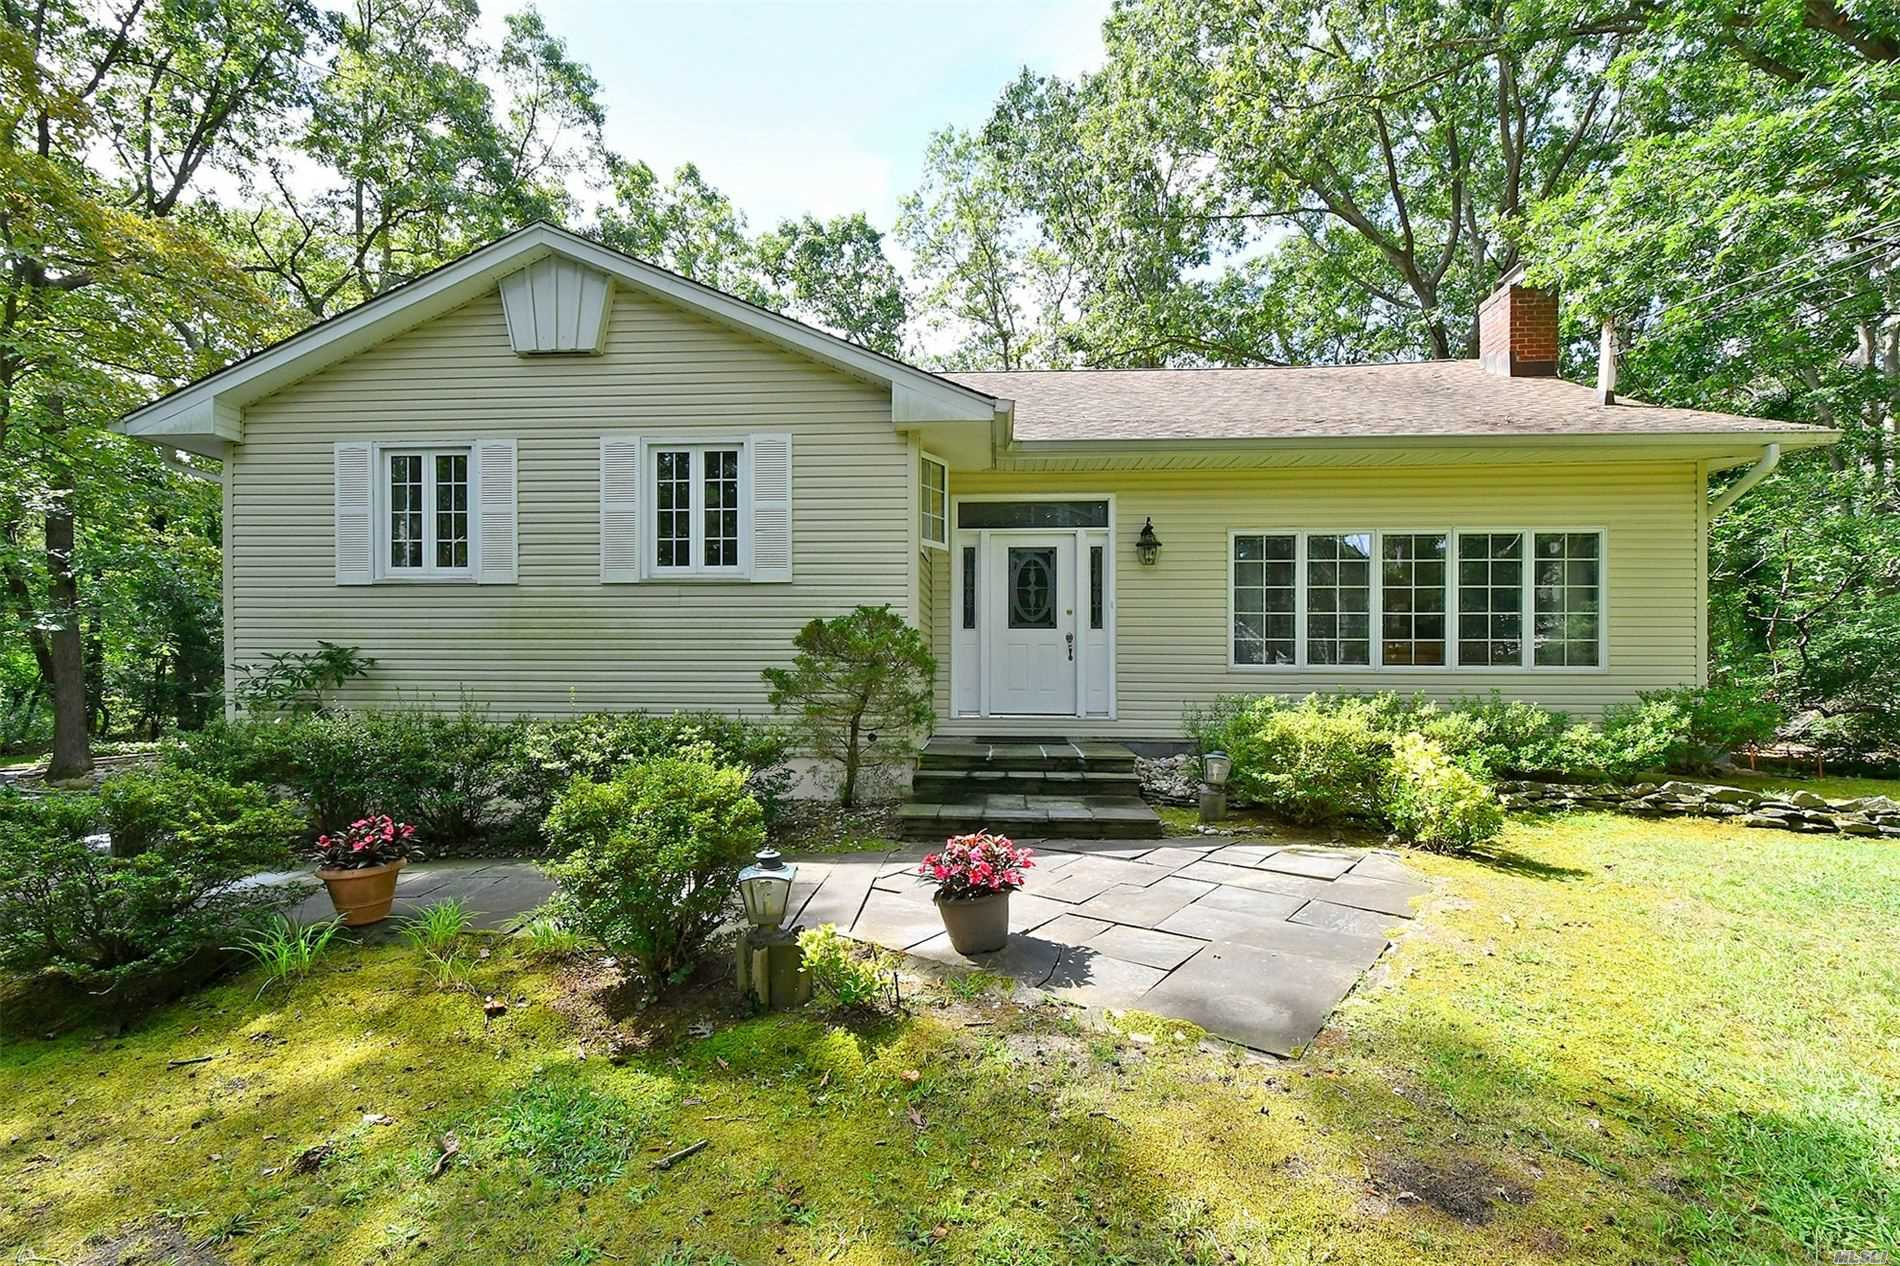 Prime Location for this Spacious, Update and Bright Split, Open Layout Includes Kitchen, Family Rm and Dining Room, Hdwd Flrs, Brick Fireplace, Updated Windows and Marble Baths, Basement, 2 Car Garage, Set on top of a Large private once acre, Come make this special your own!!